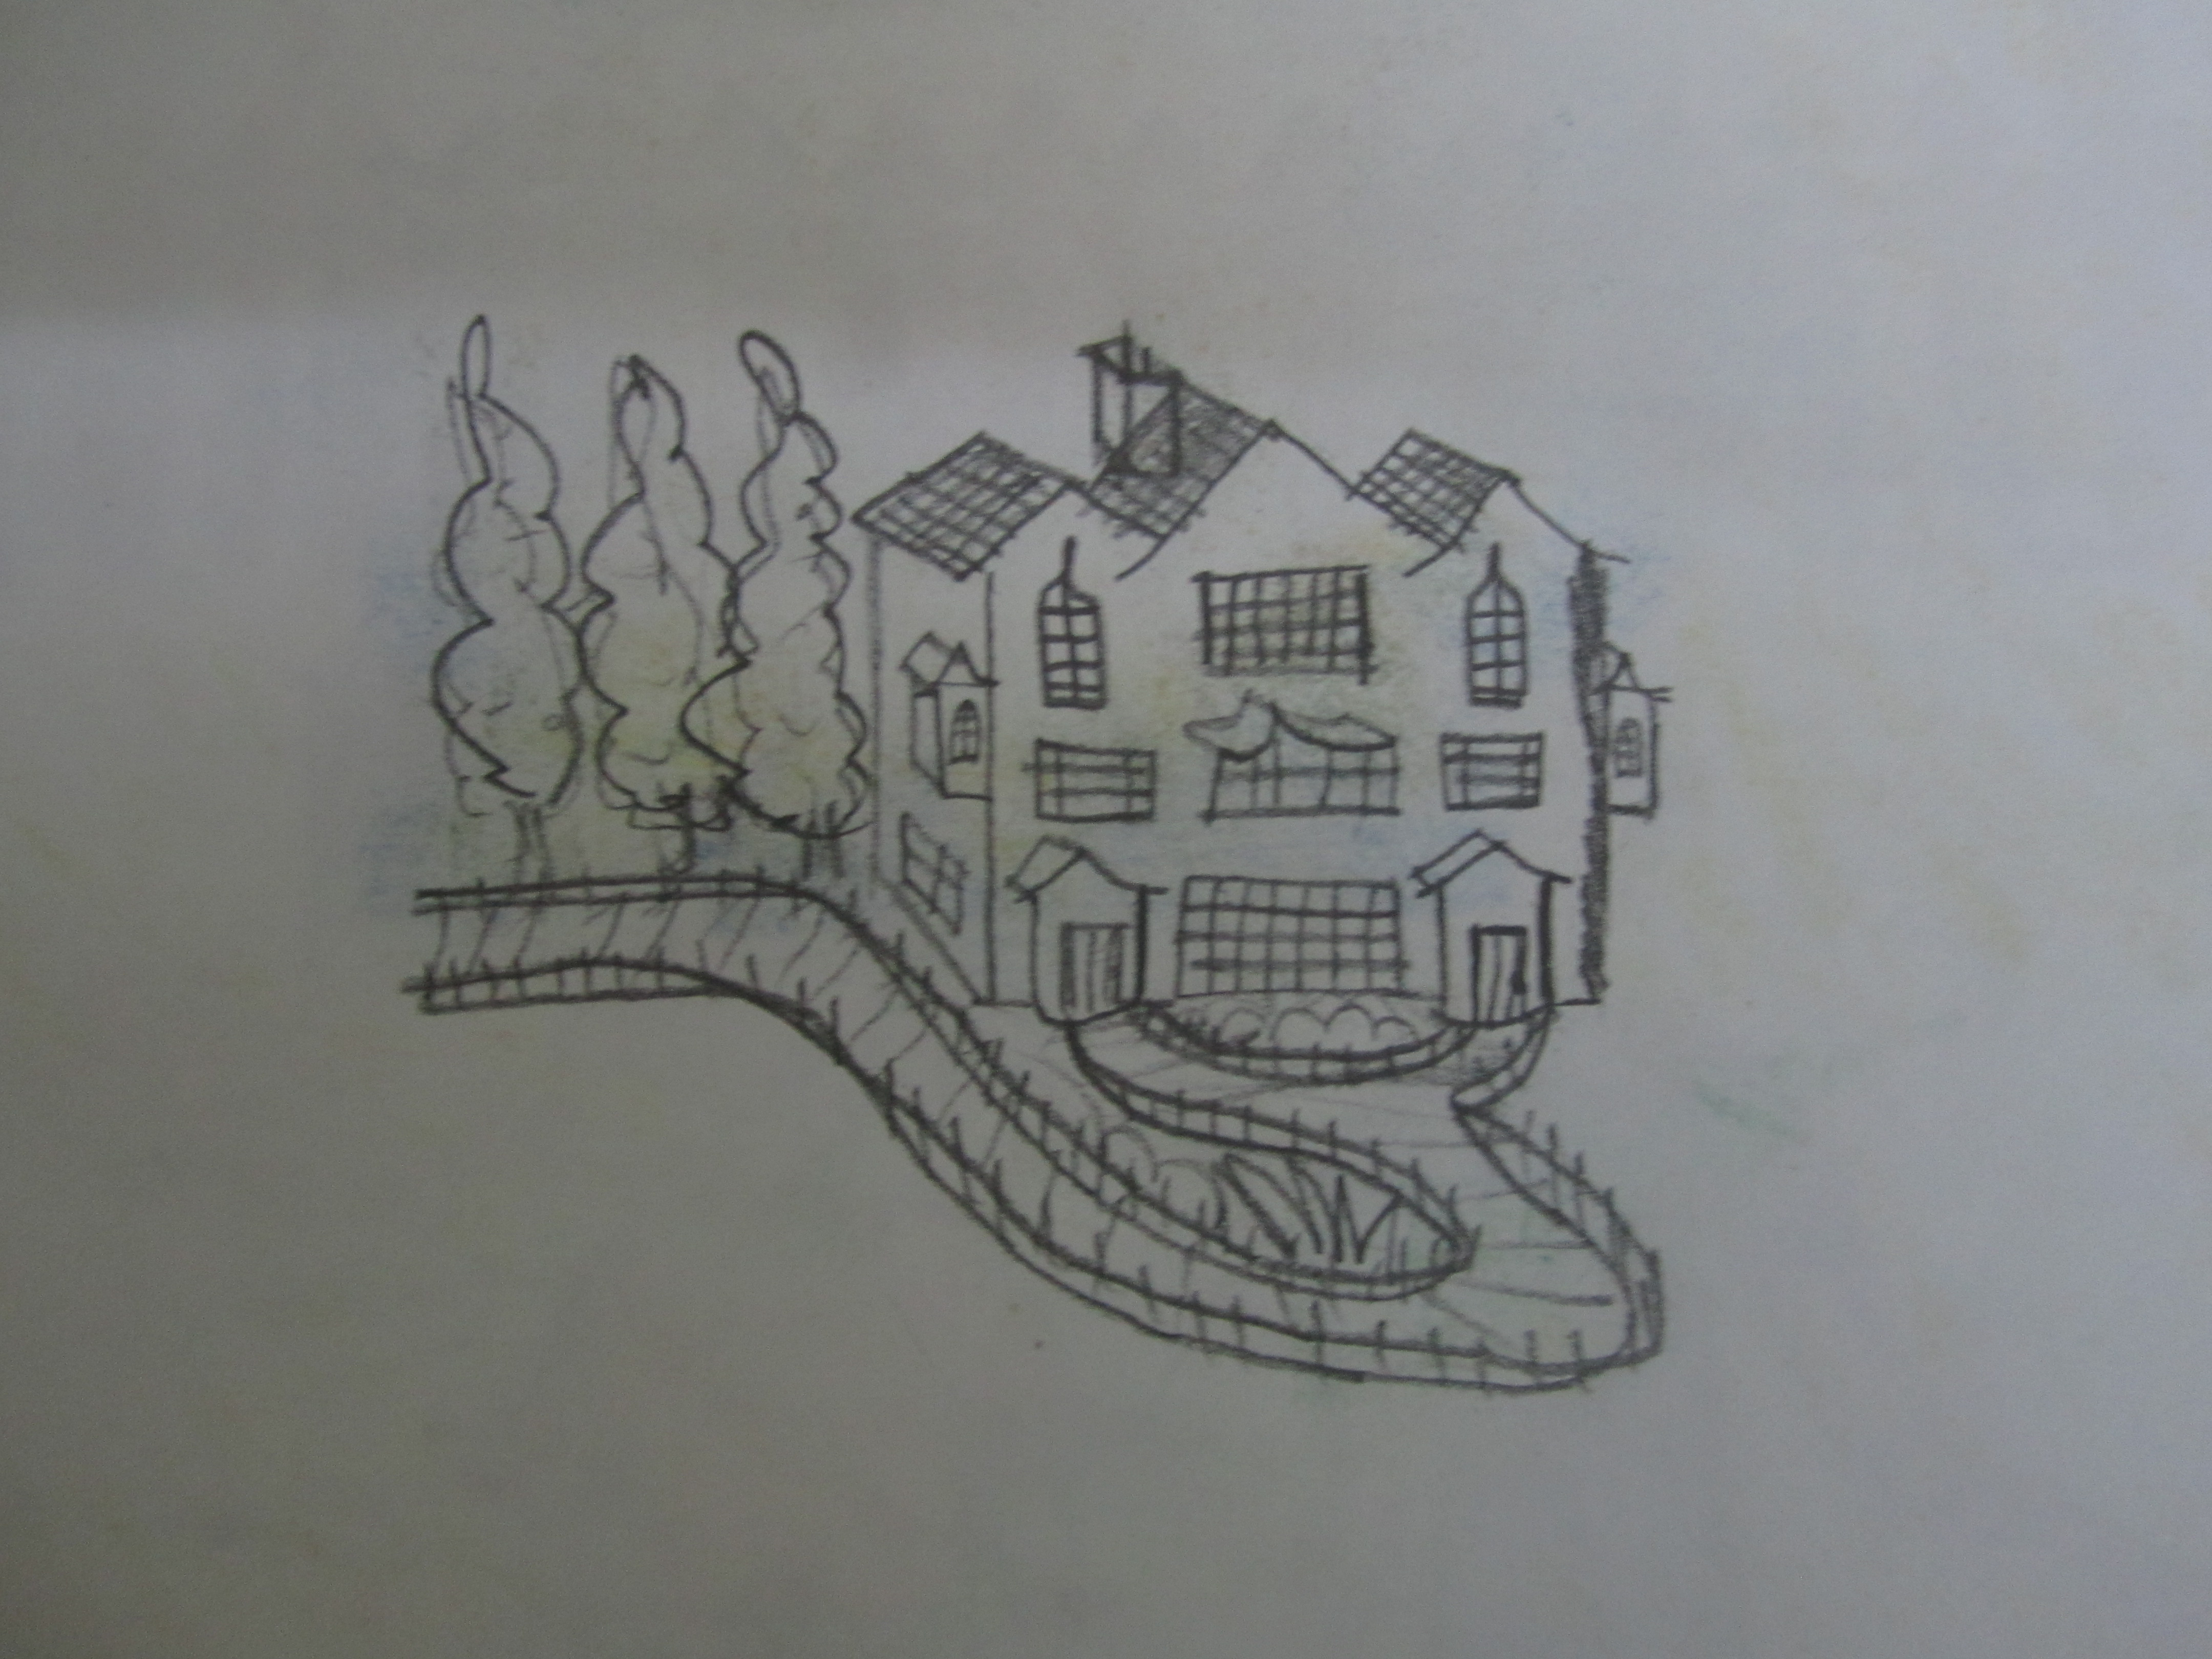 Drawn haunted house line drawing simple Mansion? old crawling haunted of